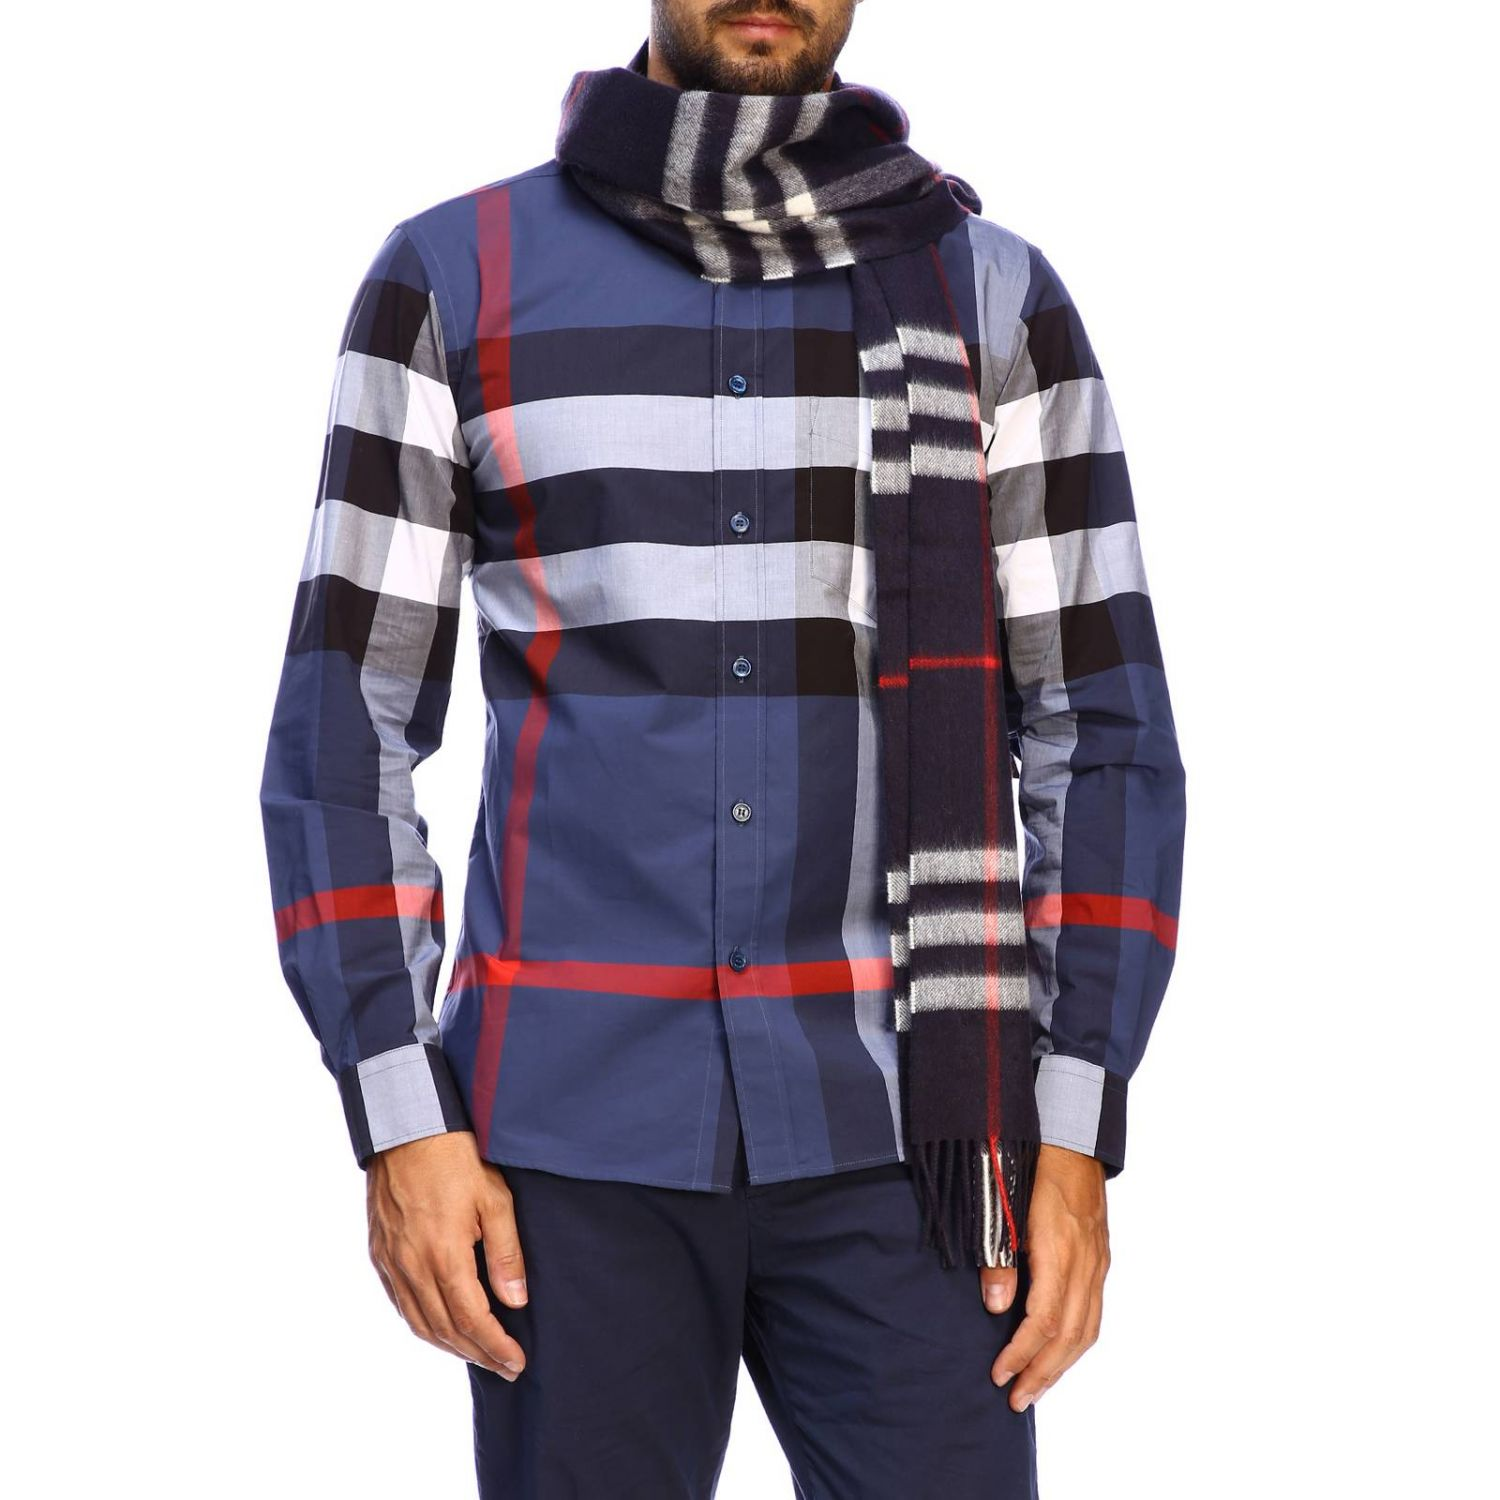 Sciarpa Burberry Giant check in cashmere blue 1